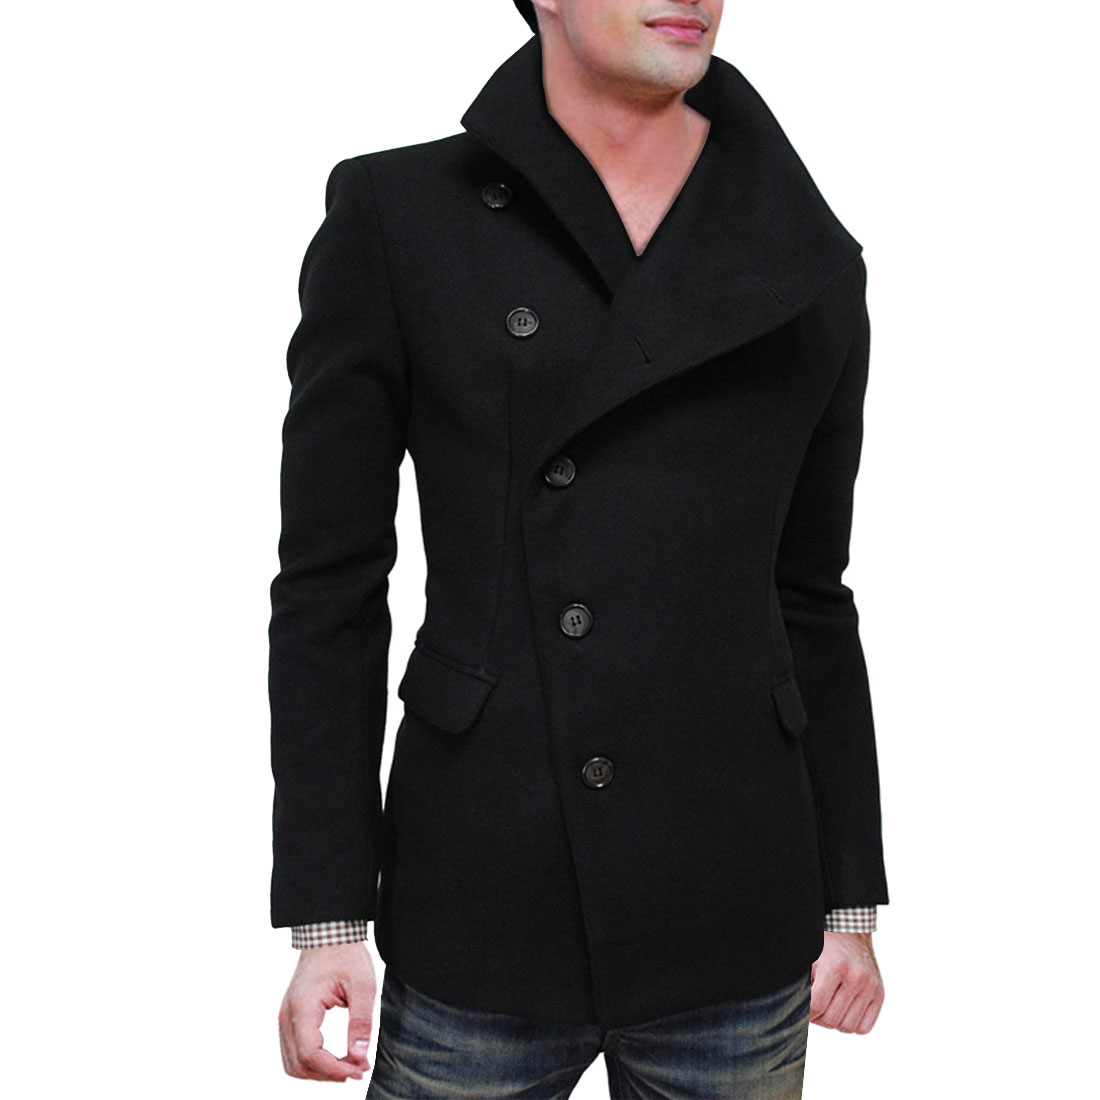 Azzuro Men's Notched Lapel Long Sleeve Slim Fit Patch Pockets Jacket Pea Coat (Size M / 40)